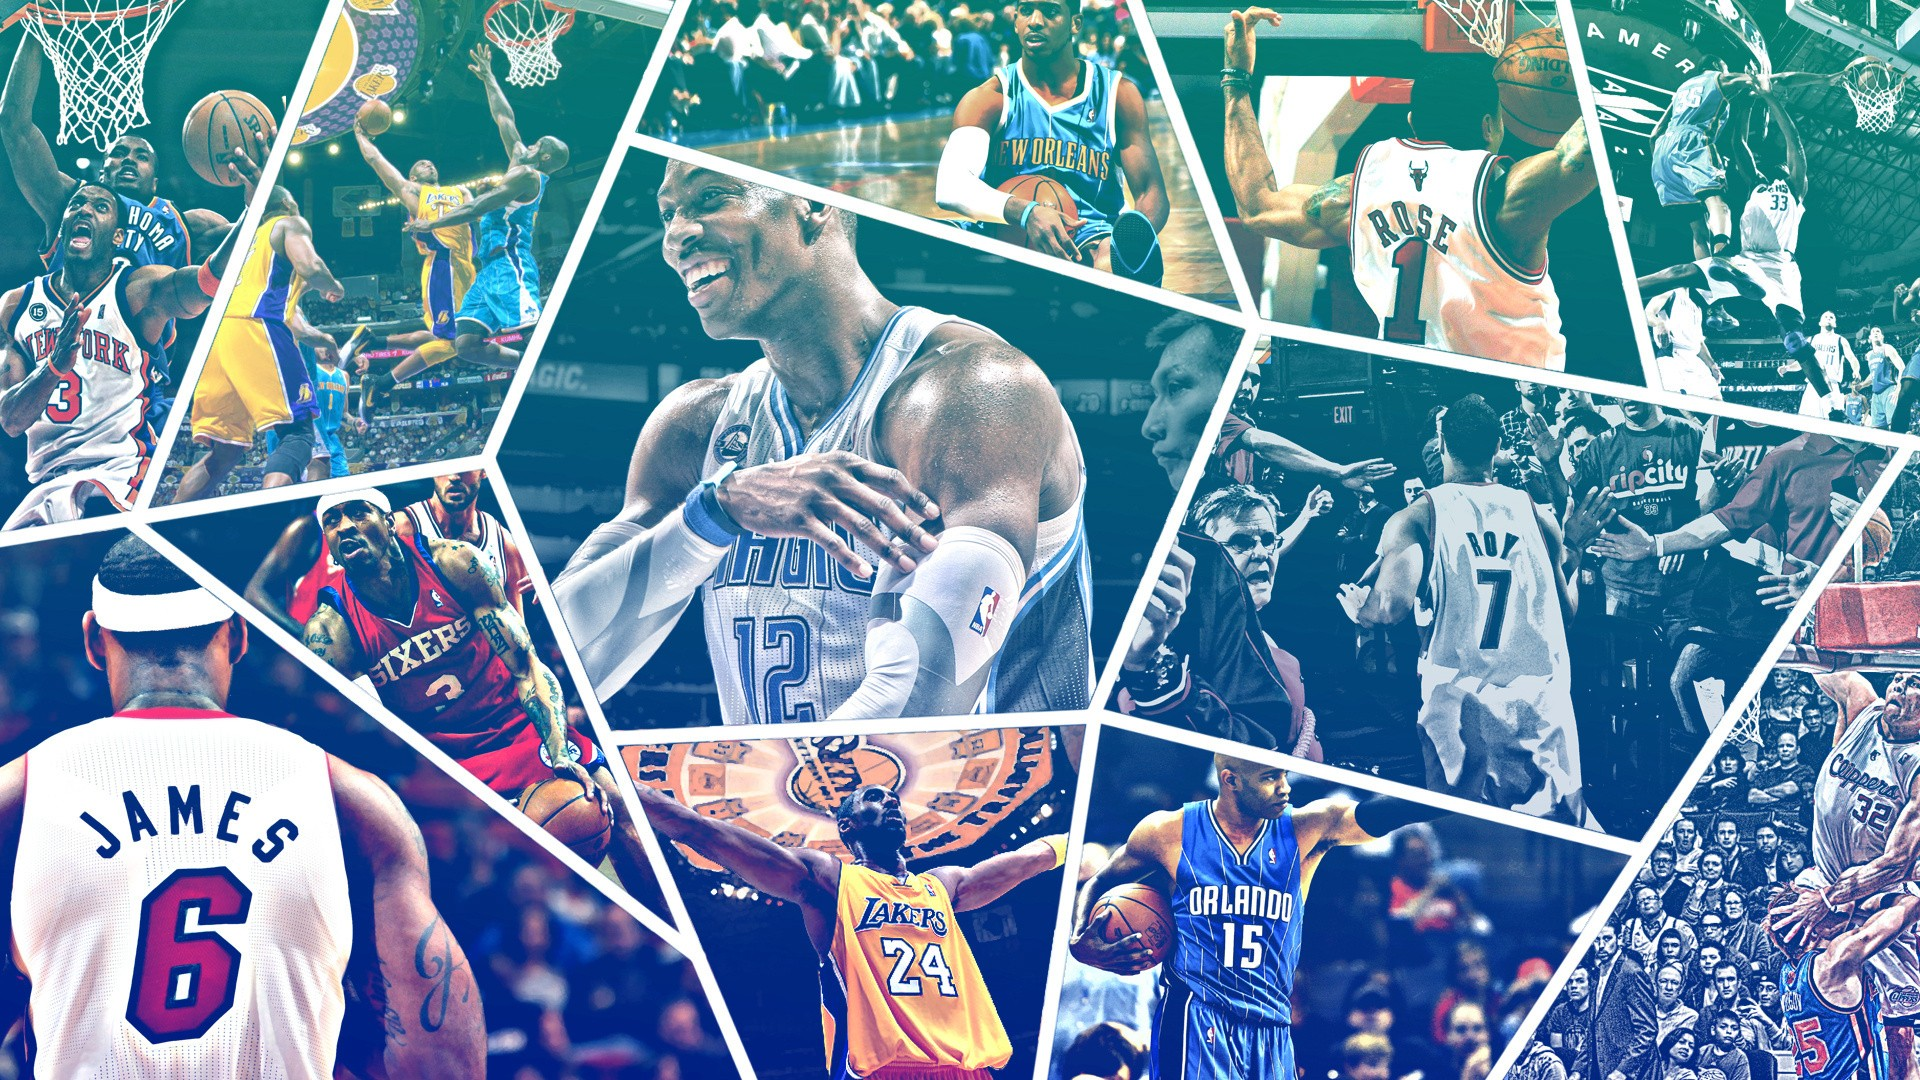 50 Nba Wallpapers 1 Download Free HD Backgrounds For Desktop